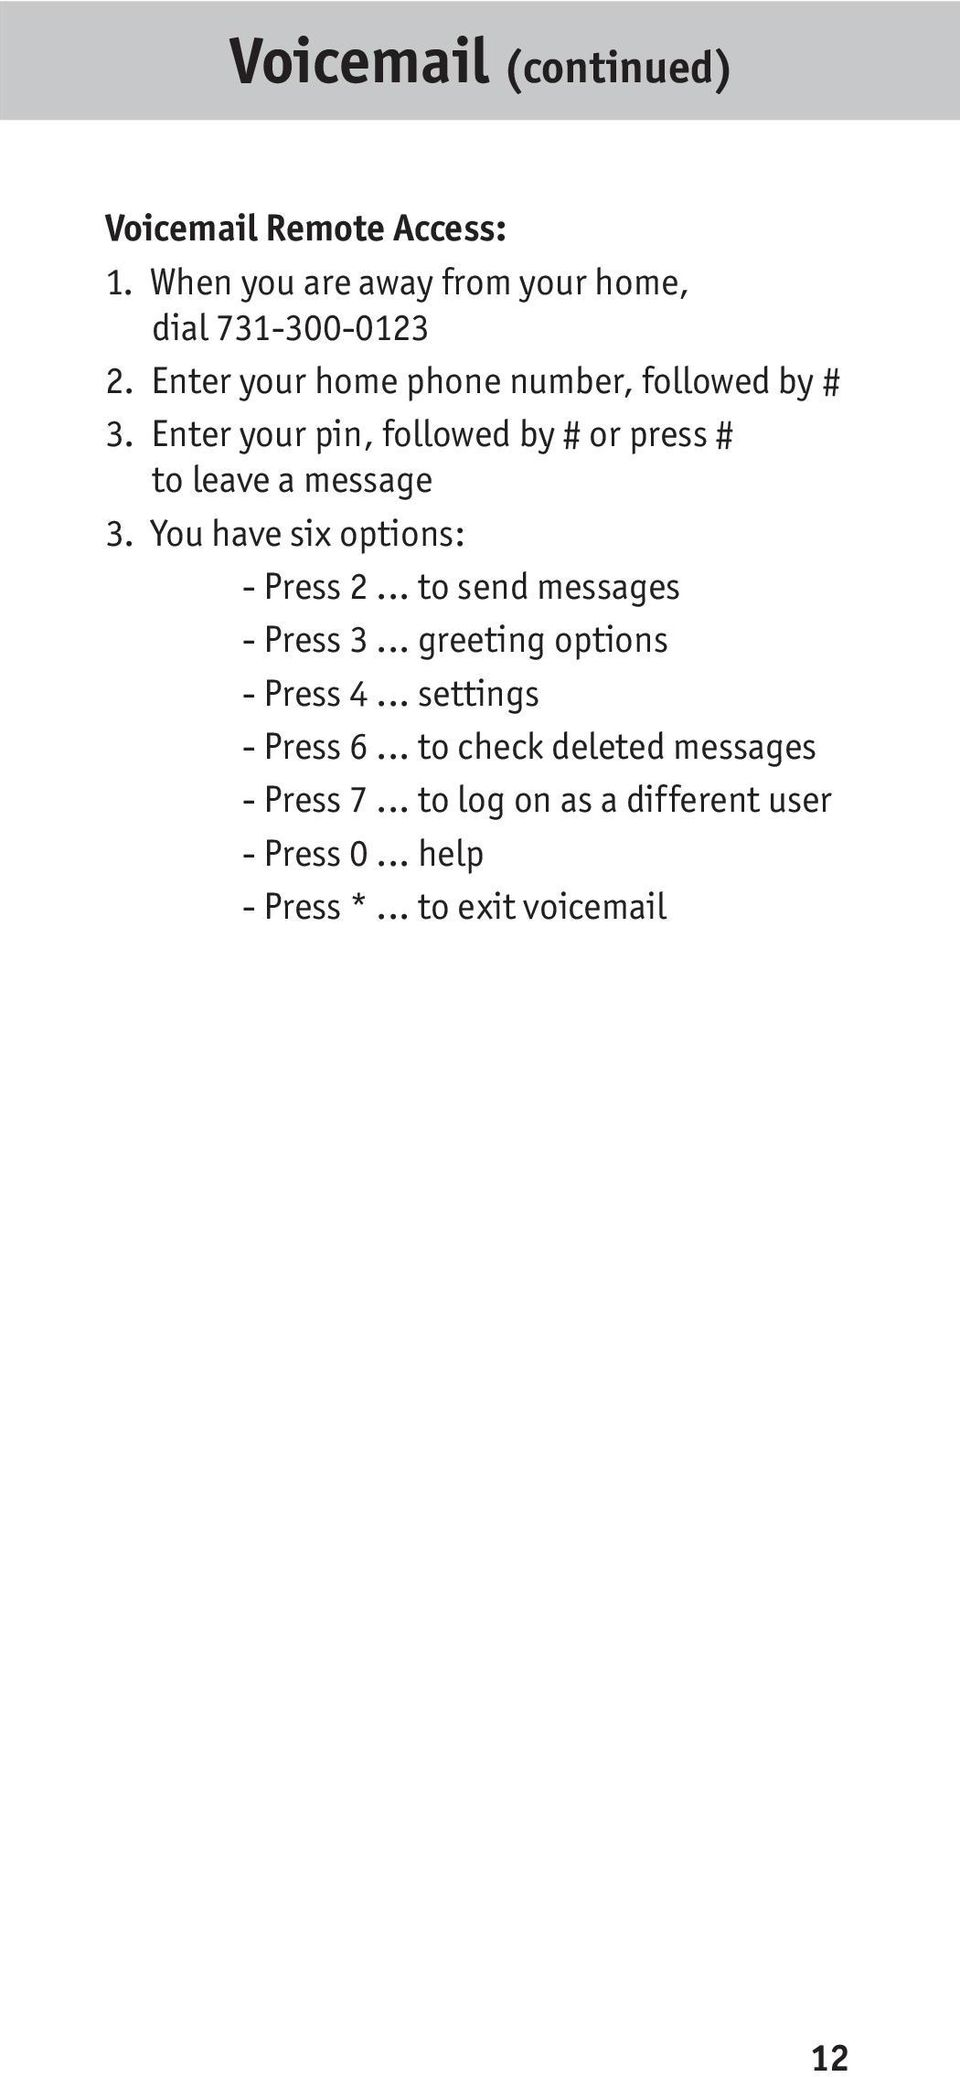 You have six options: - Press 2... to send messages - Press 3... greeting options - Press 4... settings - Press 6.